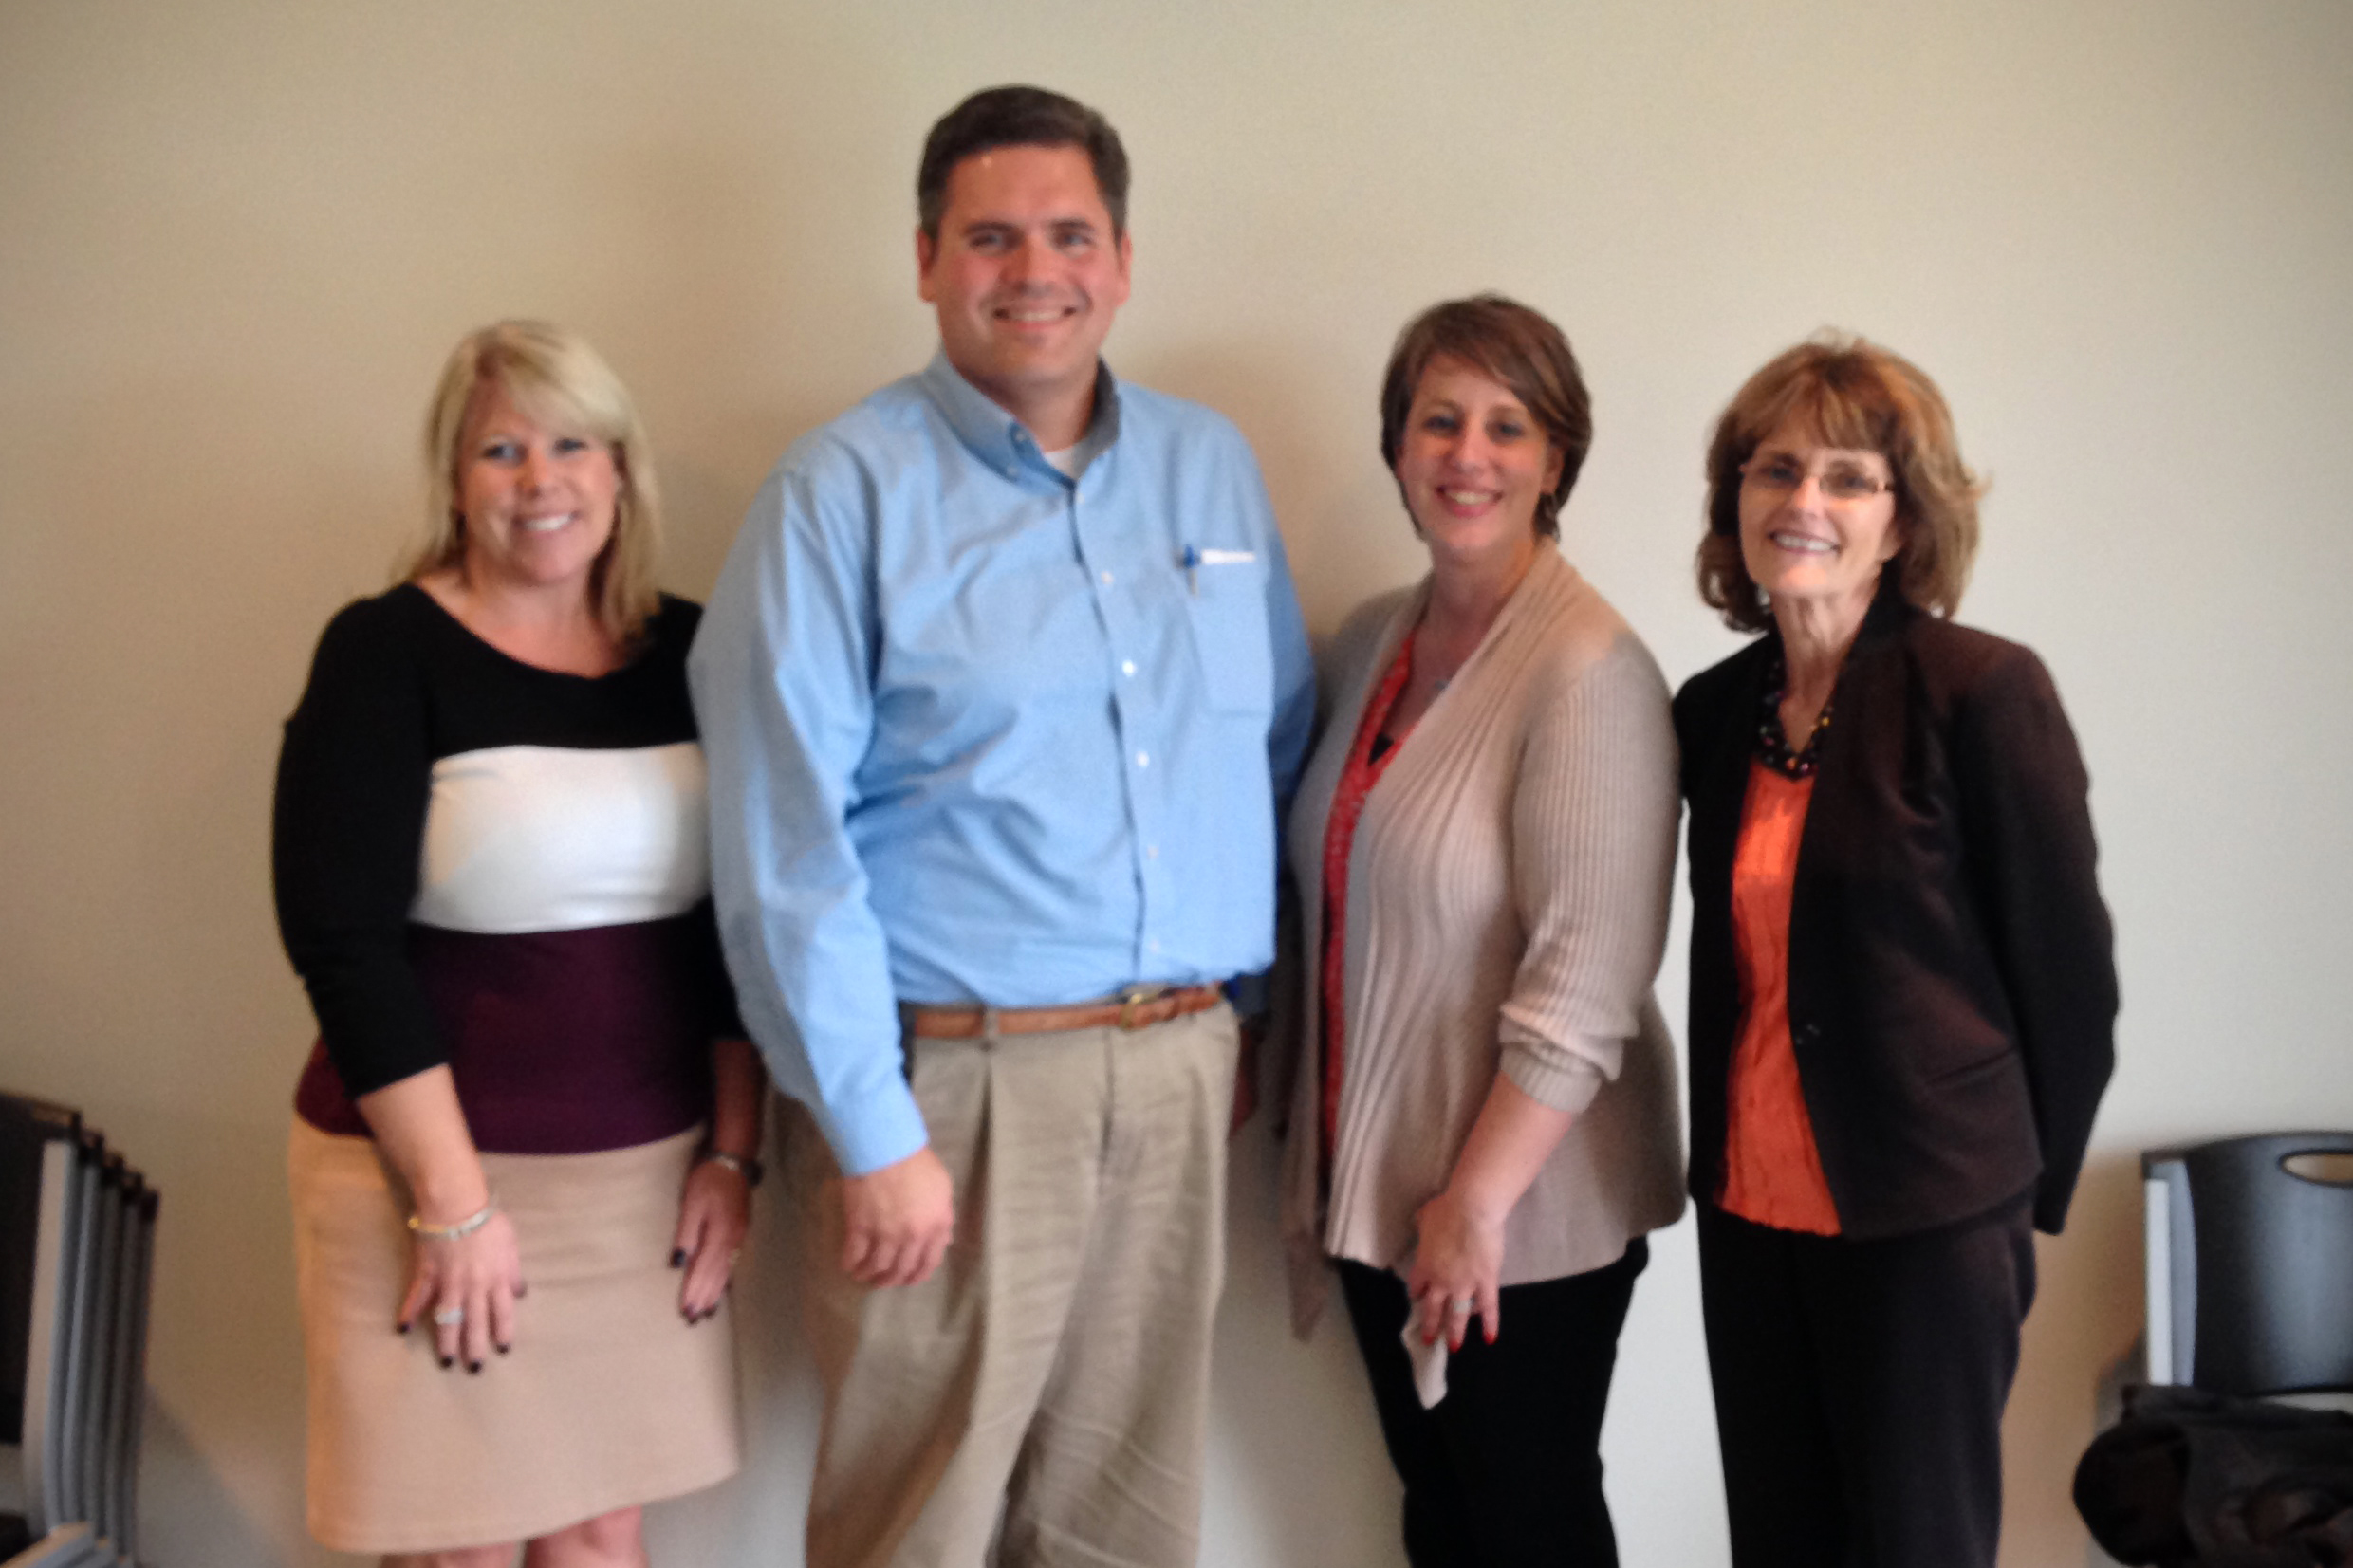 Kim Dodson with the Arc of Indiana, State Rep. Ed Clere, INARF CEO Kim Opsahl, & Rauch CEO Bettye Dunham